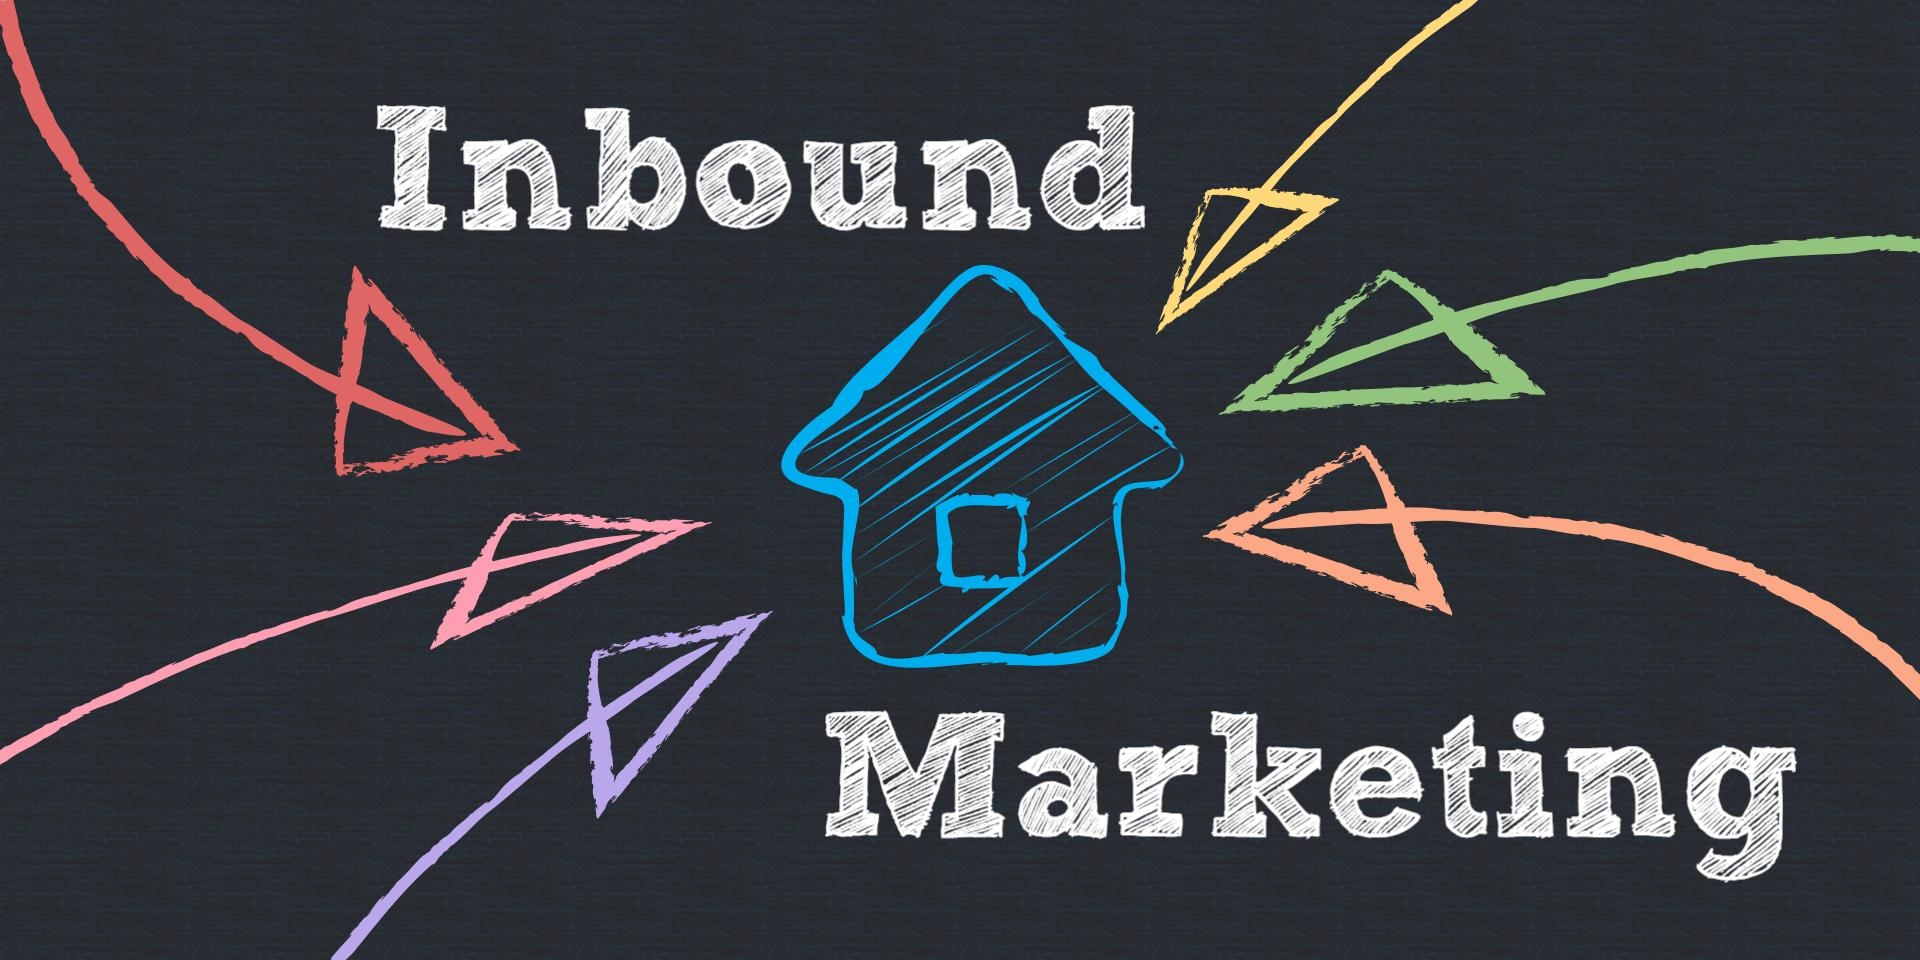 Como potenciar el inbound marketing